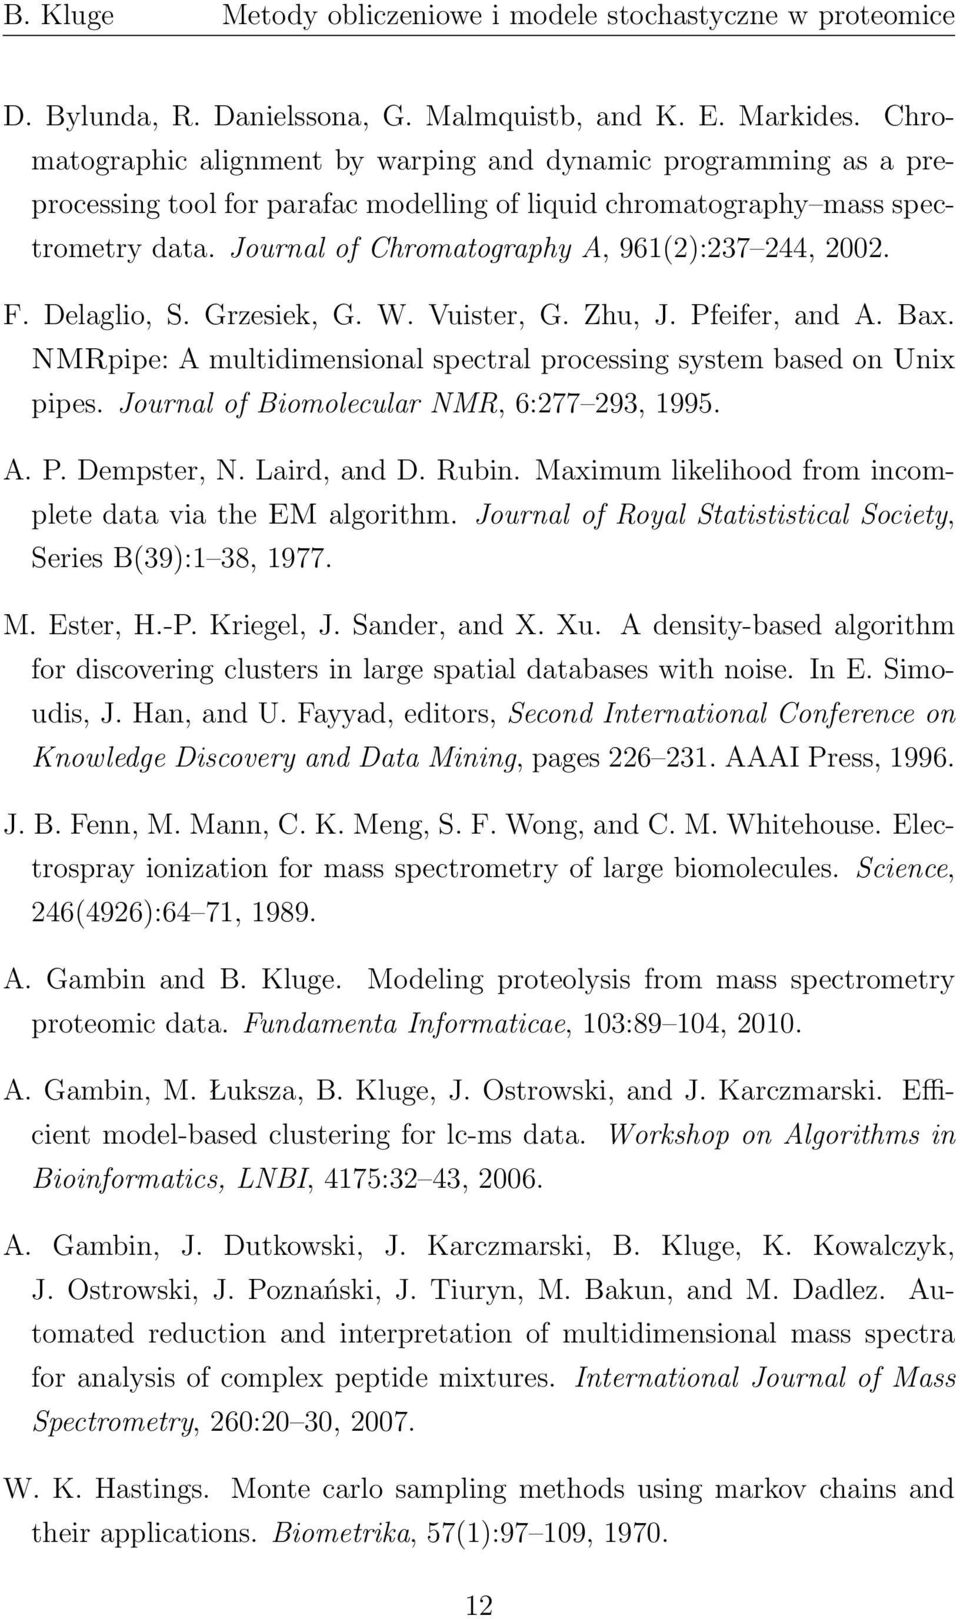 Journal of Chromatography A, 961(2):237 244, 2002. F. Delaglio, S. Grzesiek, G. W. Vuister, G. Zhu, J. Pfeifer, and A. Bax. NMRpipe: A multidimensional spectral processing system based on Unix pipes.